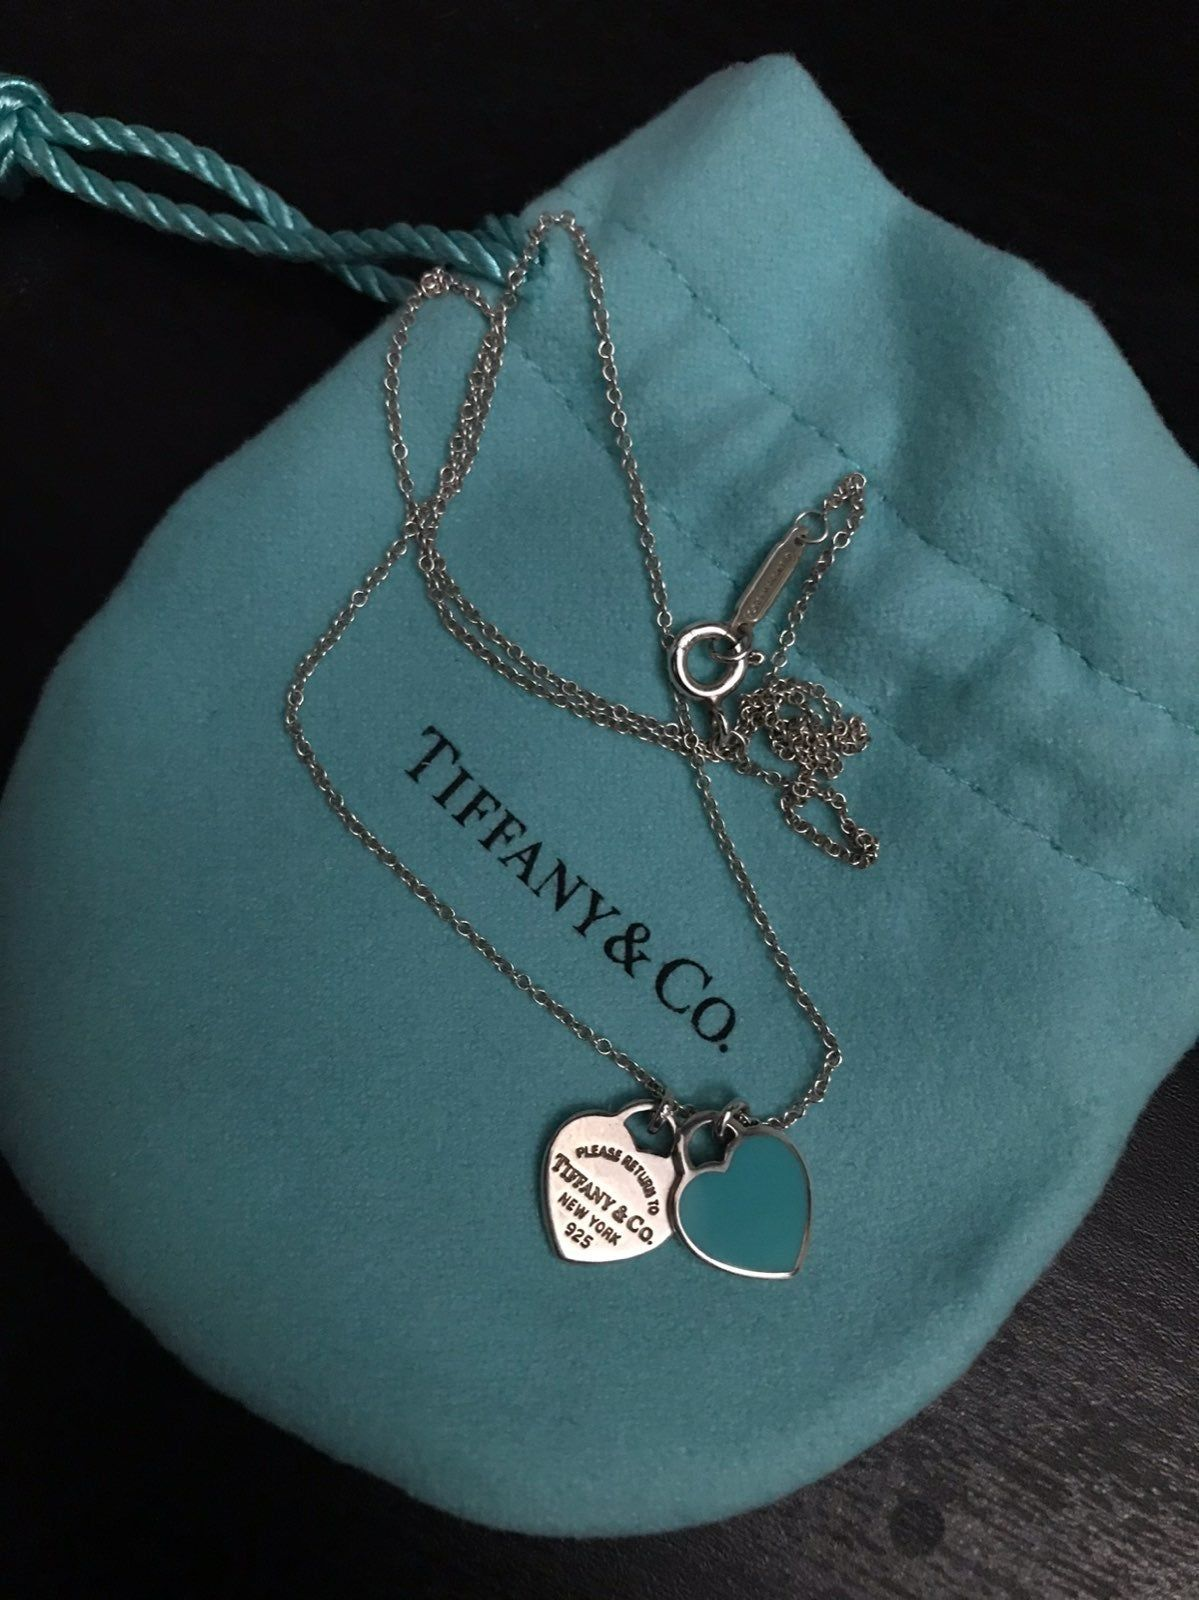 Taking Best Offer No Scratches Genuine Tiffany And Co Necklace 16 Inch Chain Tiffany And Co Earrings Tiffany And Co Jewelry Tiffany And Co Necklace